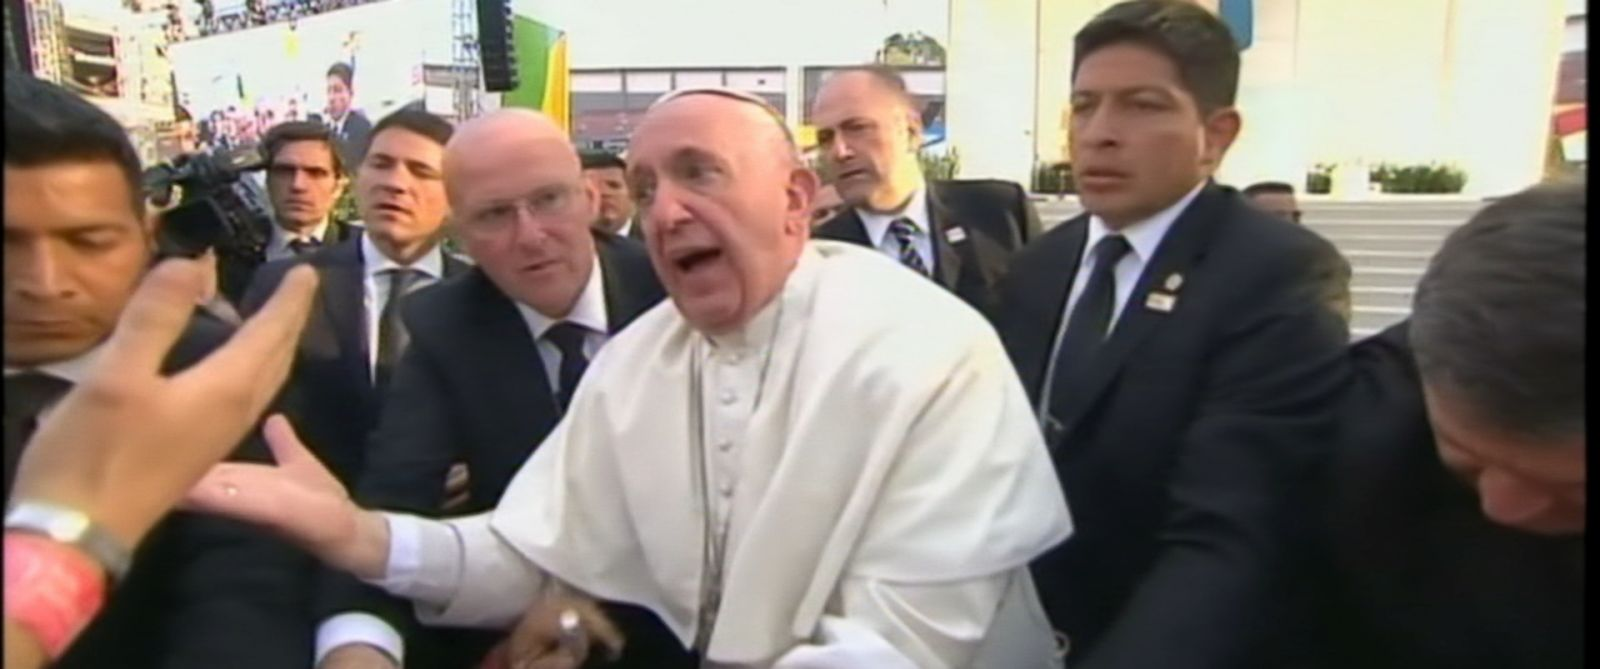 PHOTO: The pontiff almost fell over as crowds tugged on his sleeve during a stop in Mexico.